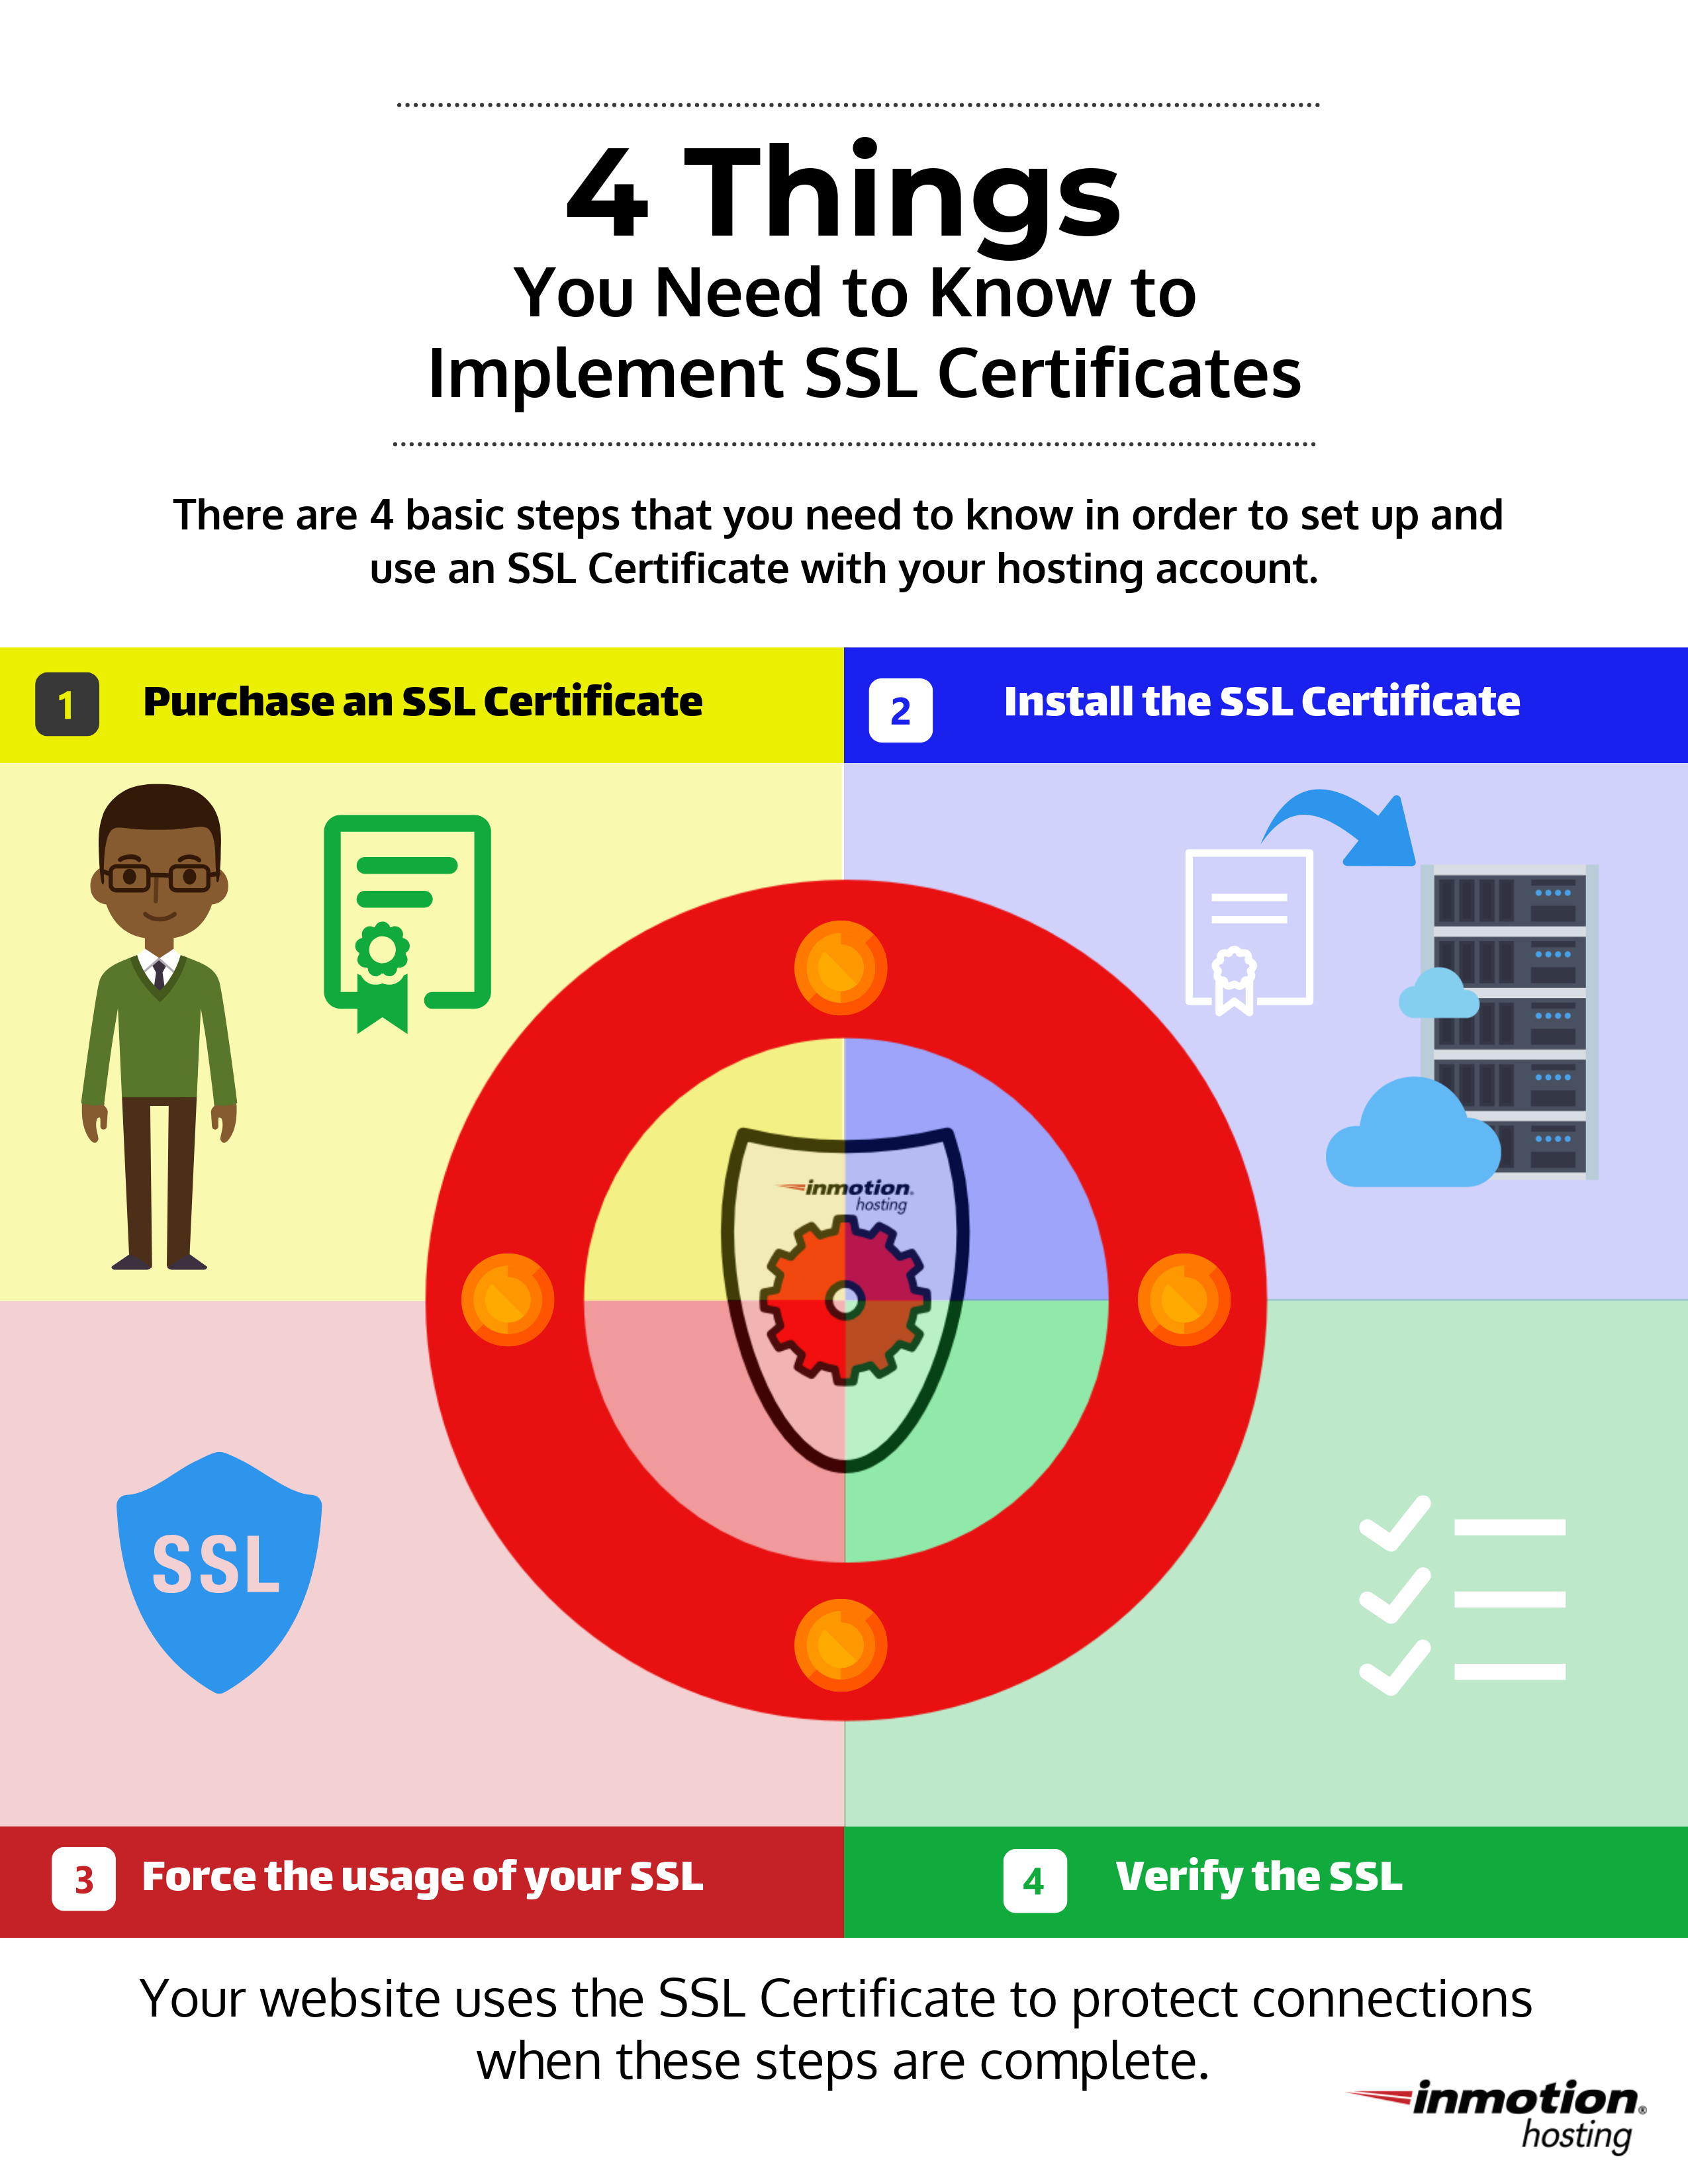 infographic- 4 things you need to know to implement an SSL certificate